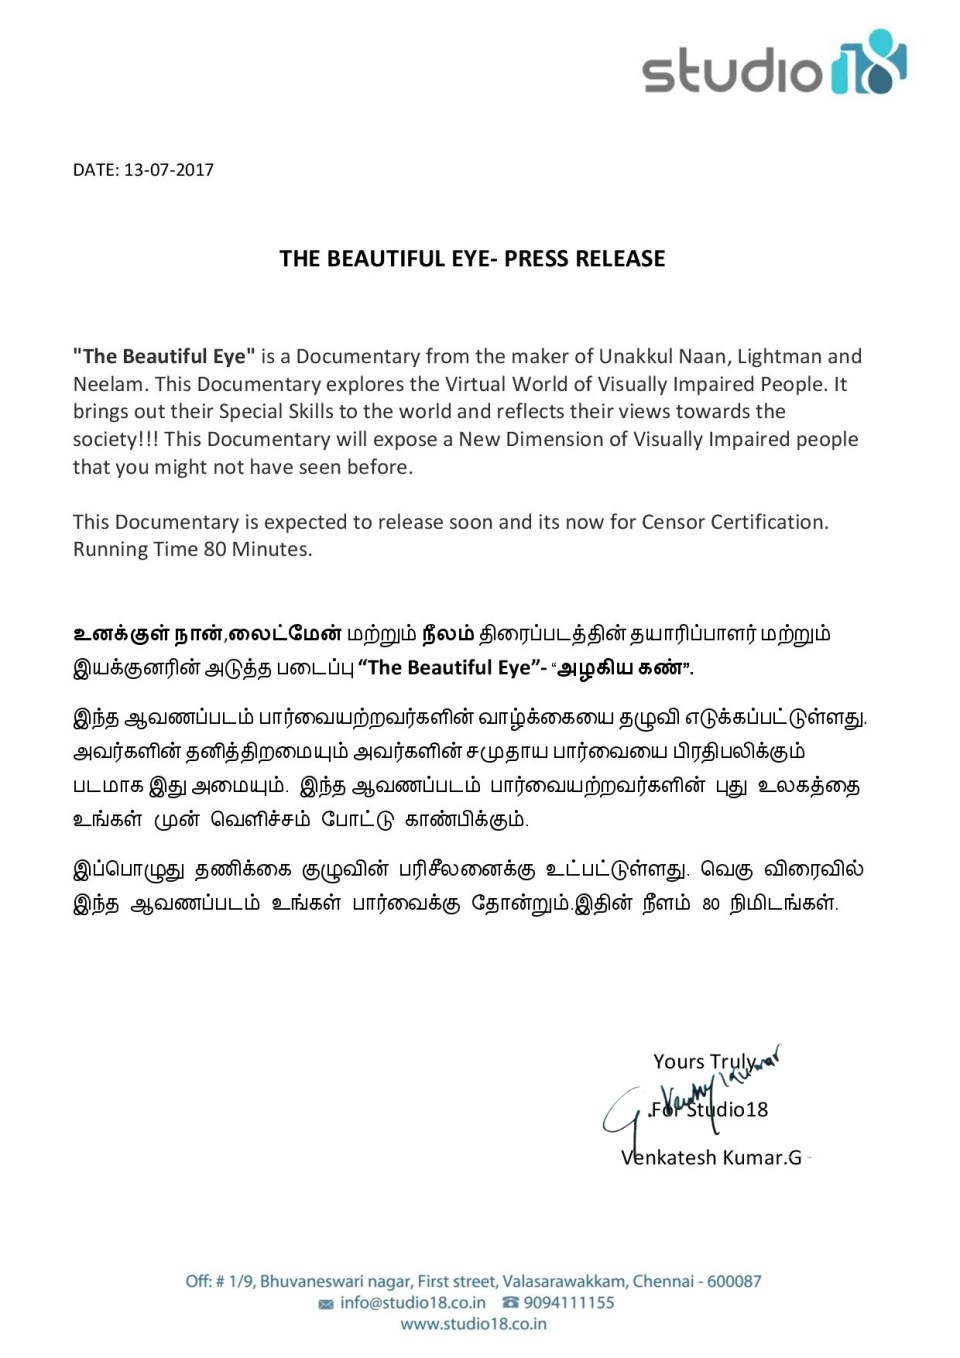 The Beautiful Eye Documentary Press Release - English and Tamil